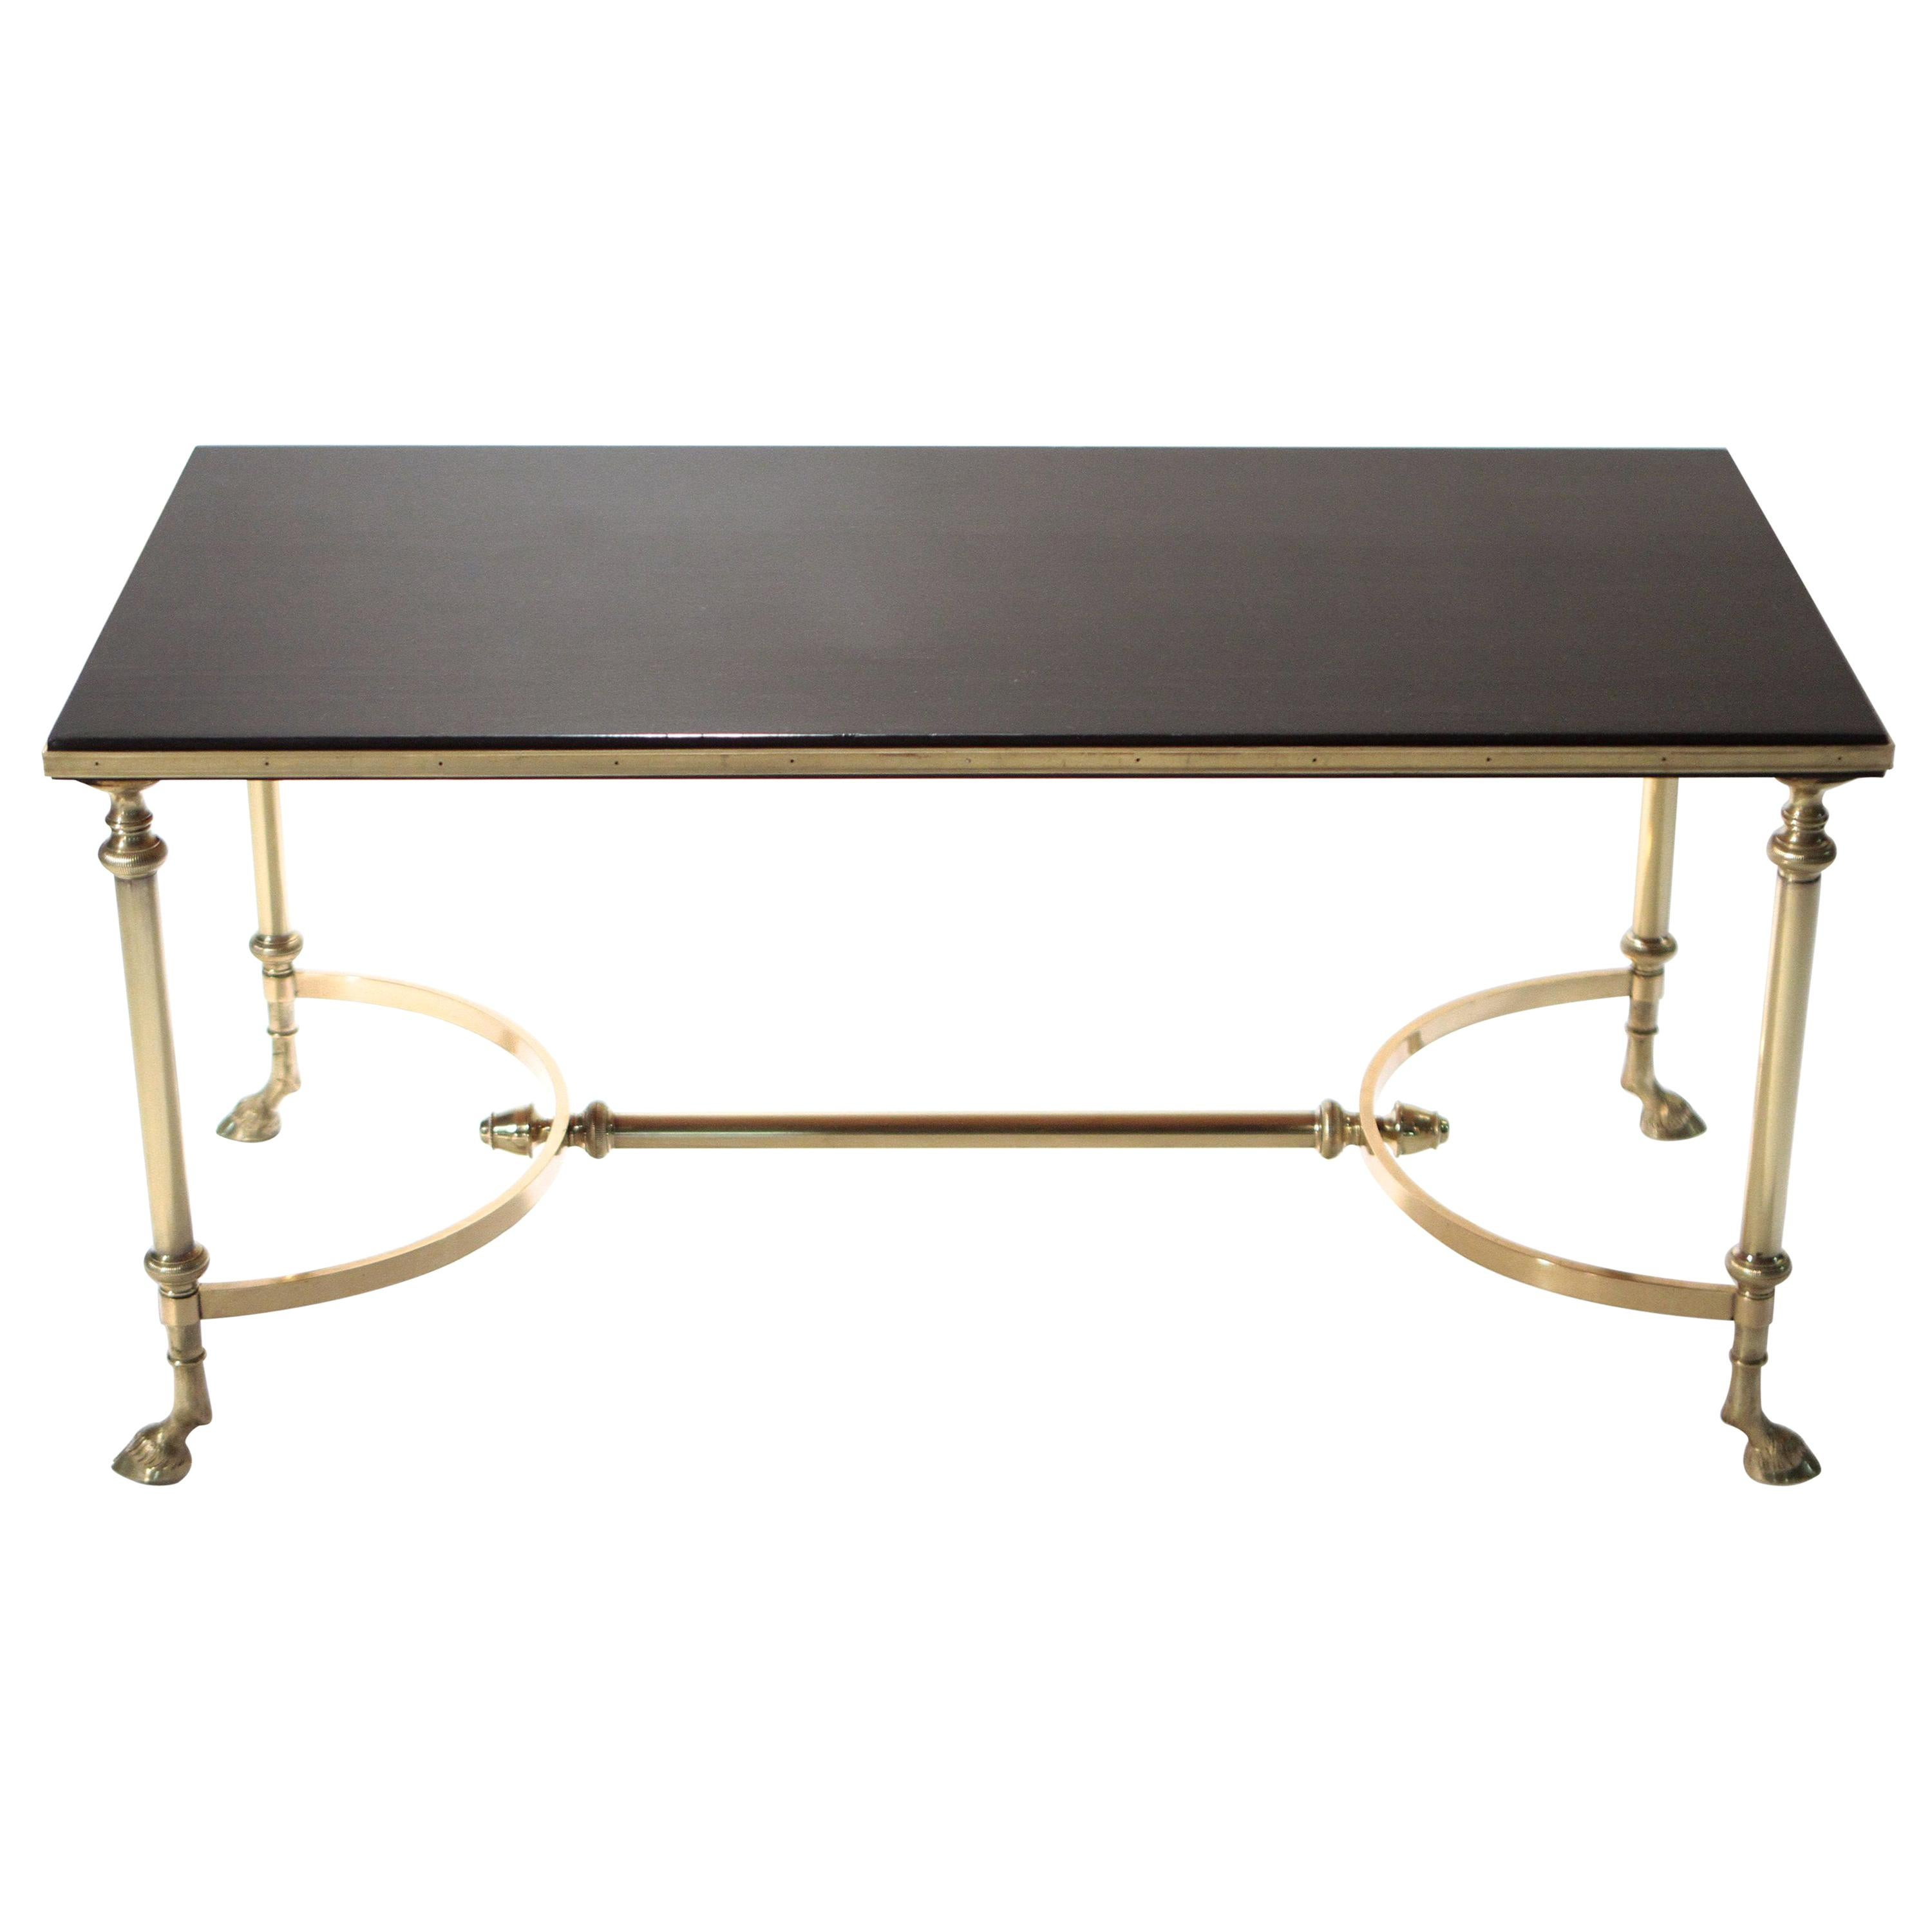 Neoclassical Maison Charles Brass and Lacquer Coffee Table, 1960s